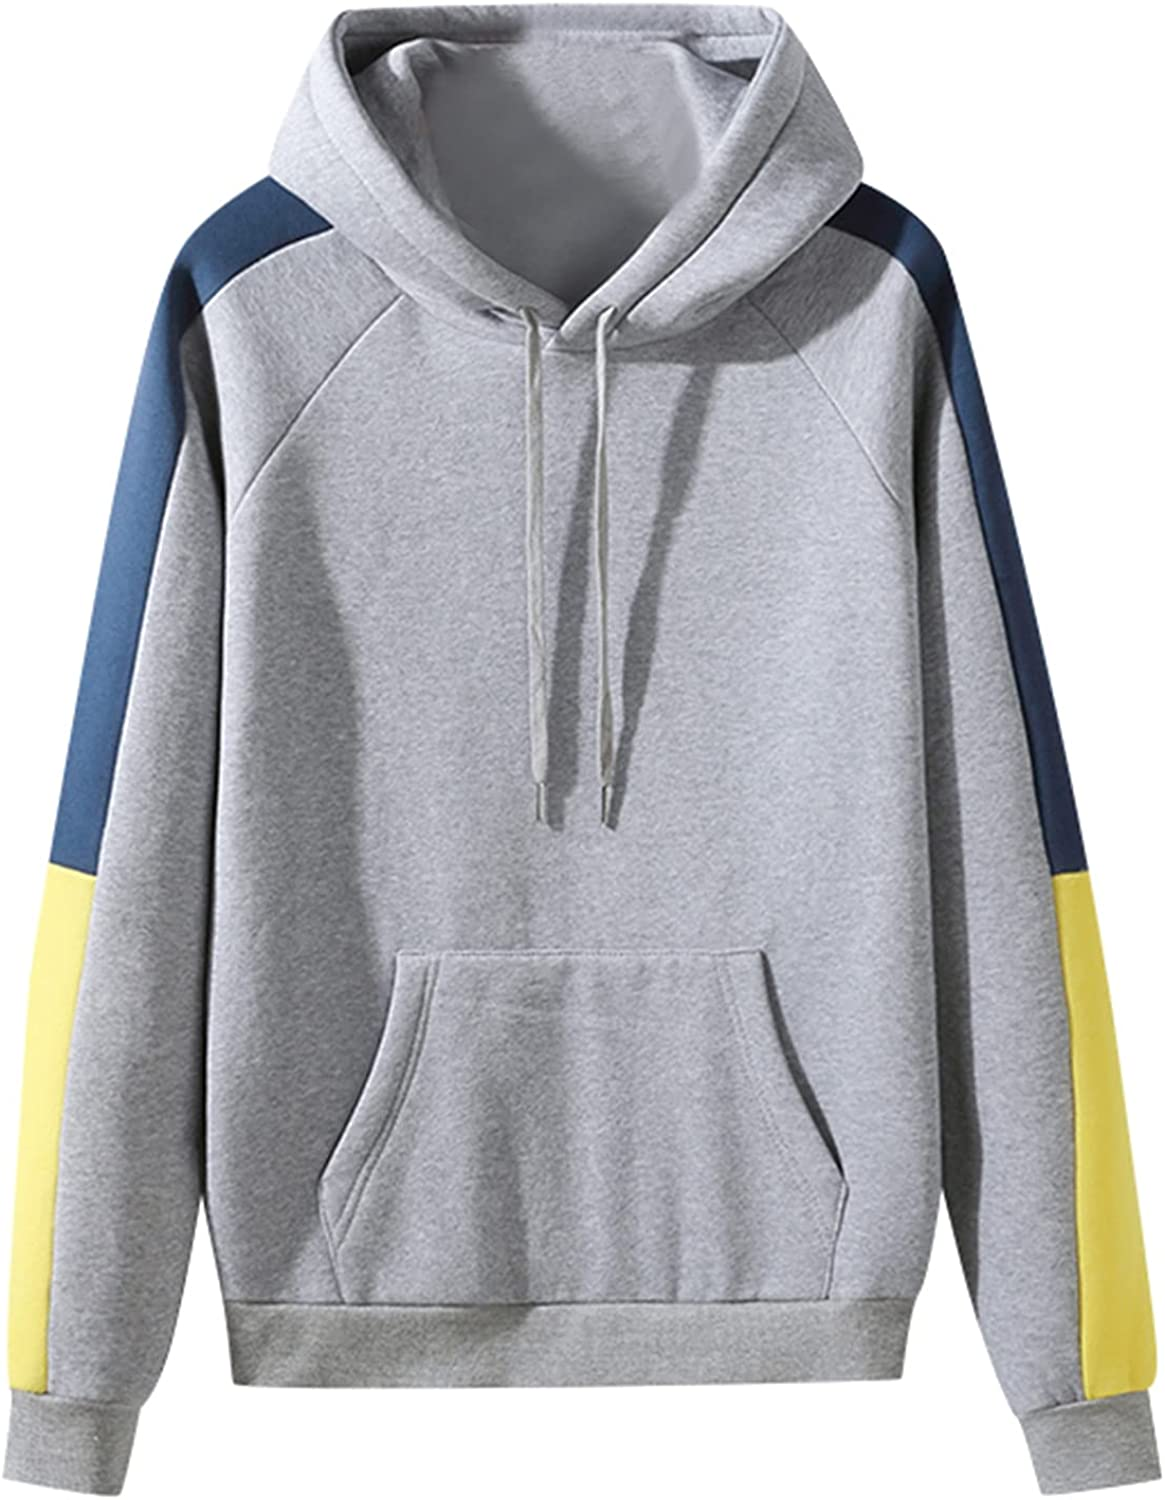 Huangse Hooded Shirt for Men Contrast Color Long Sleeve Kangaroo Pocket Sweatshirt Casual Loose Athletic Tops with Drawstring